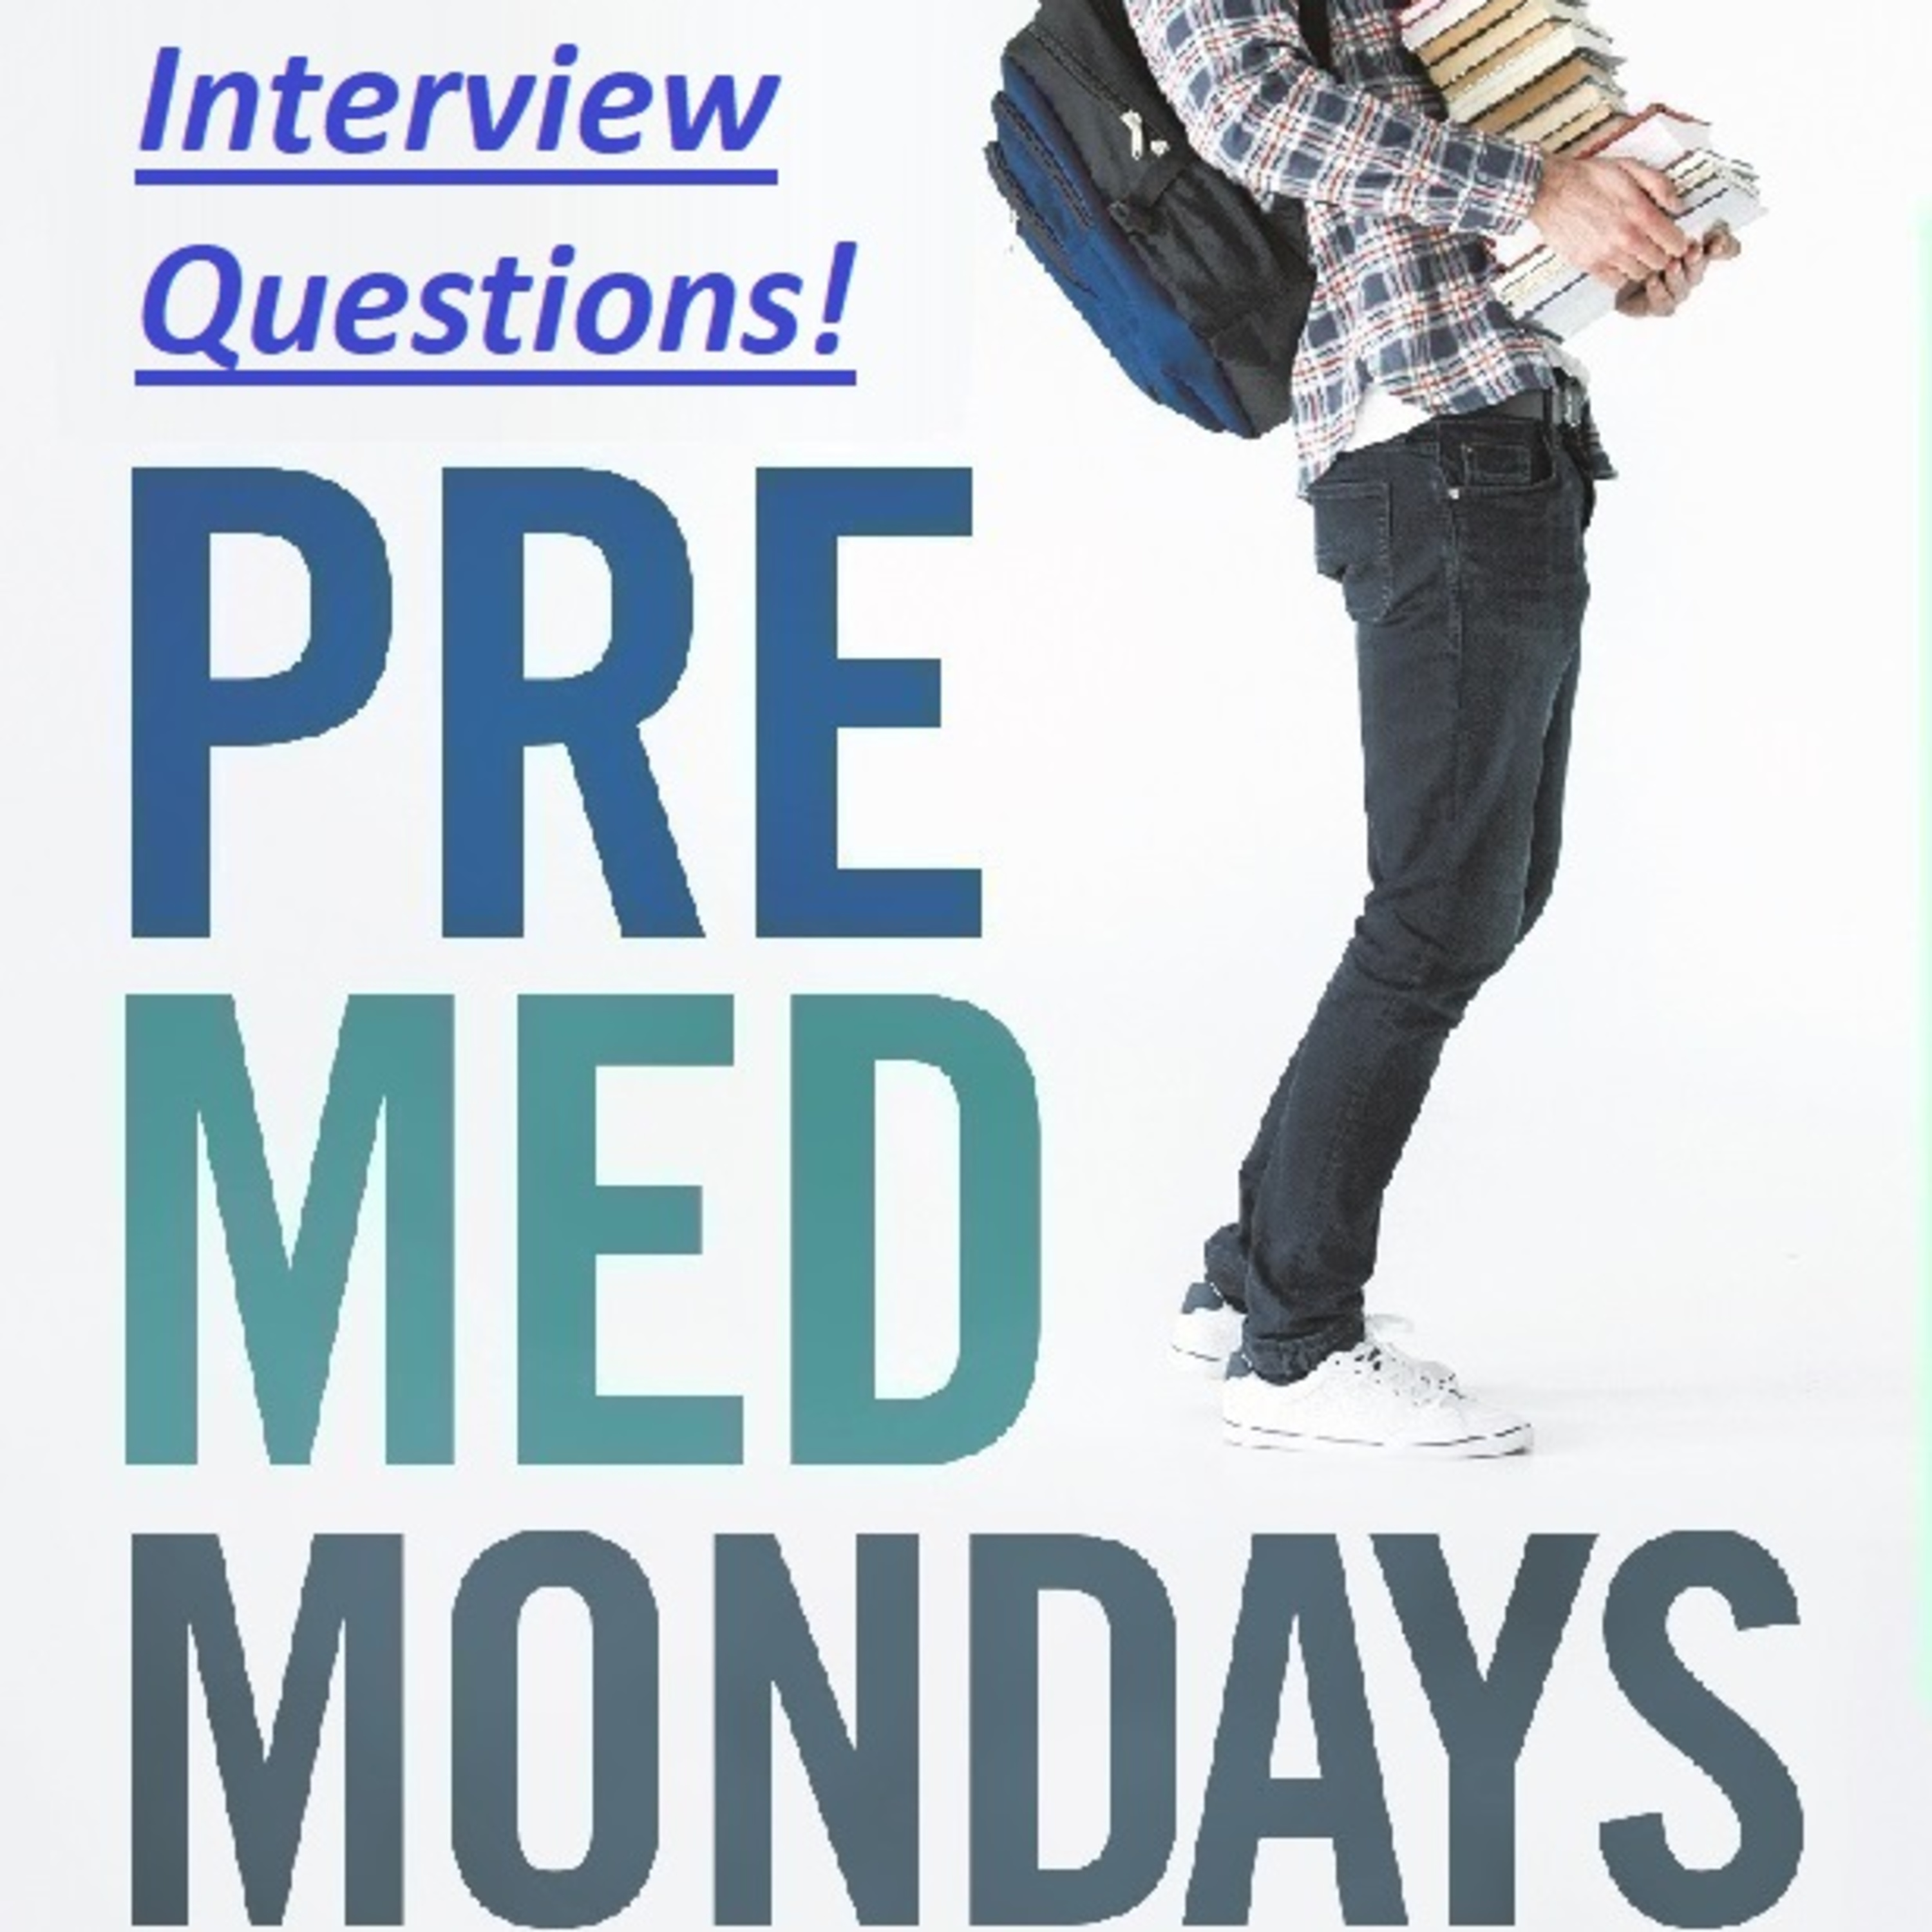 5 Interview Questions to Prepare For!